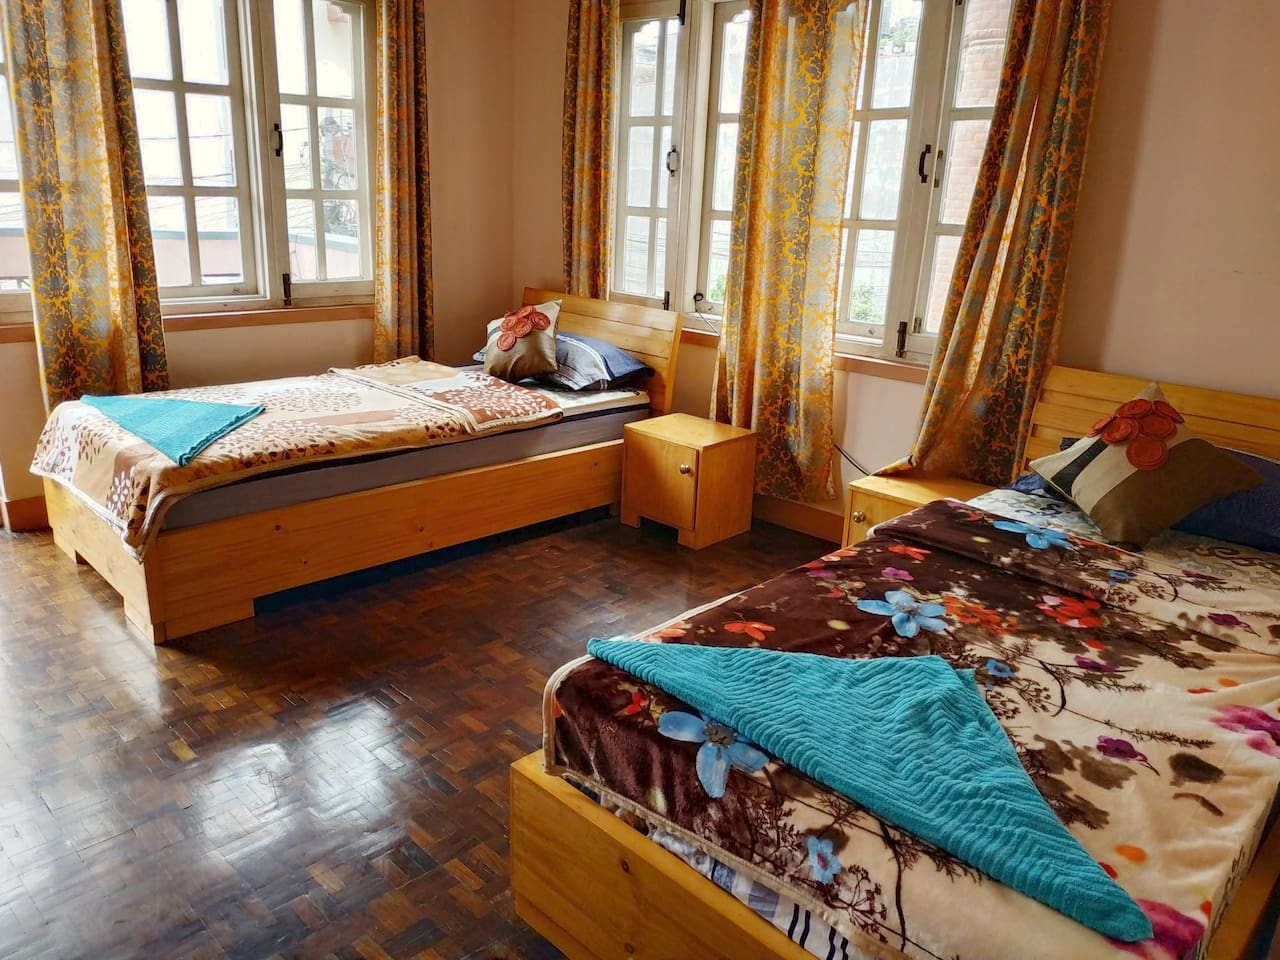 This twin beds room is good for two travellers or single person.